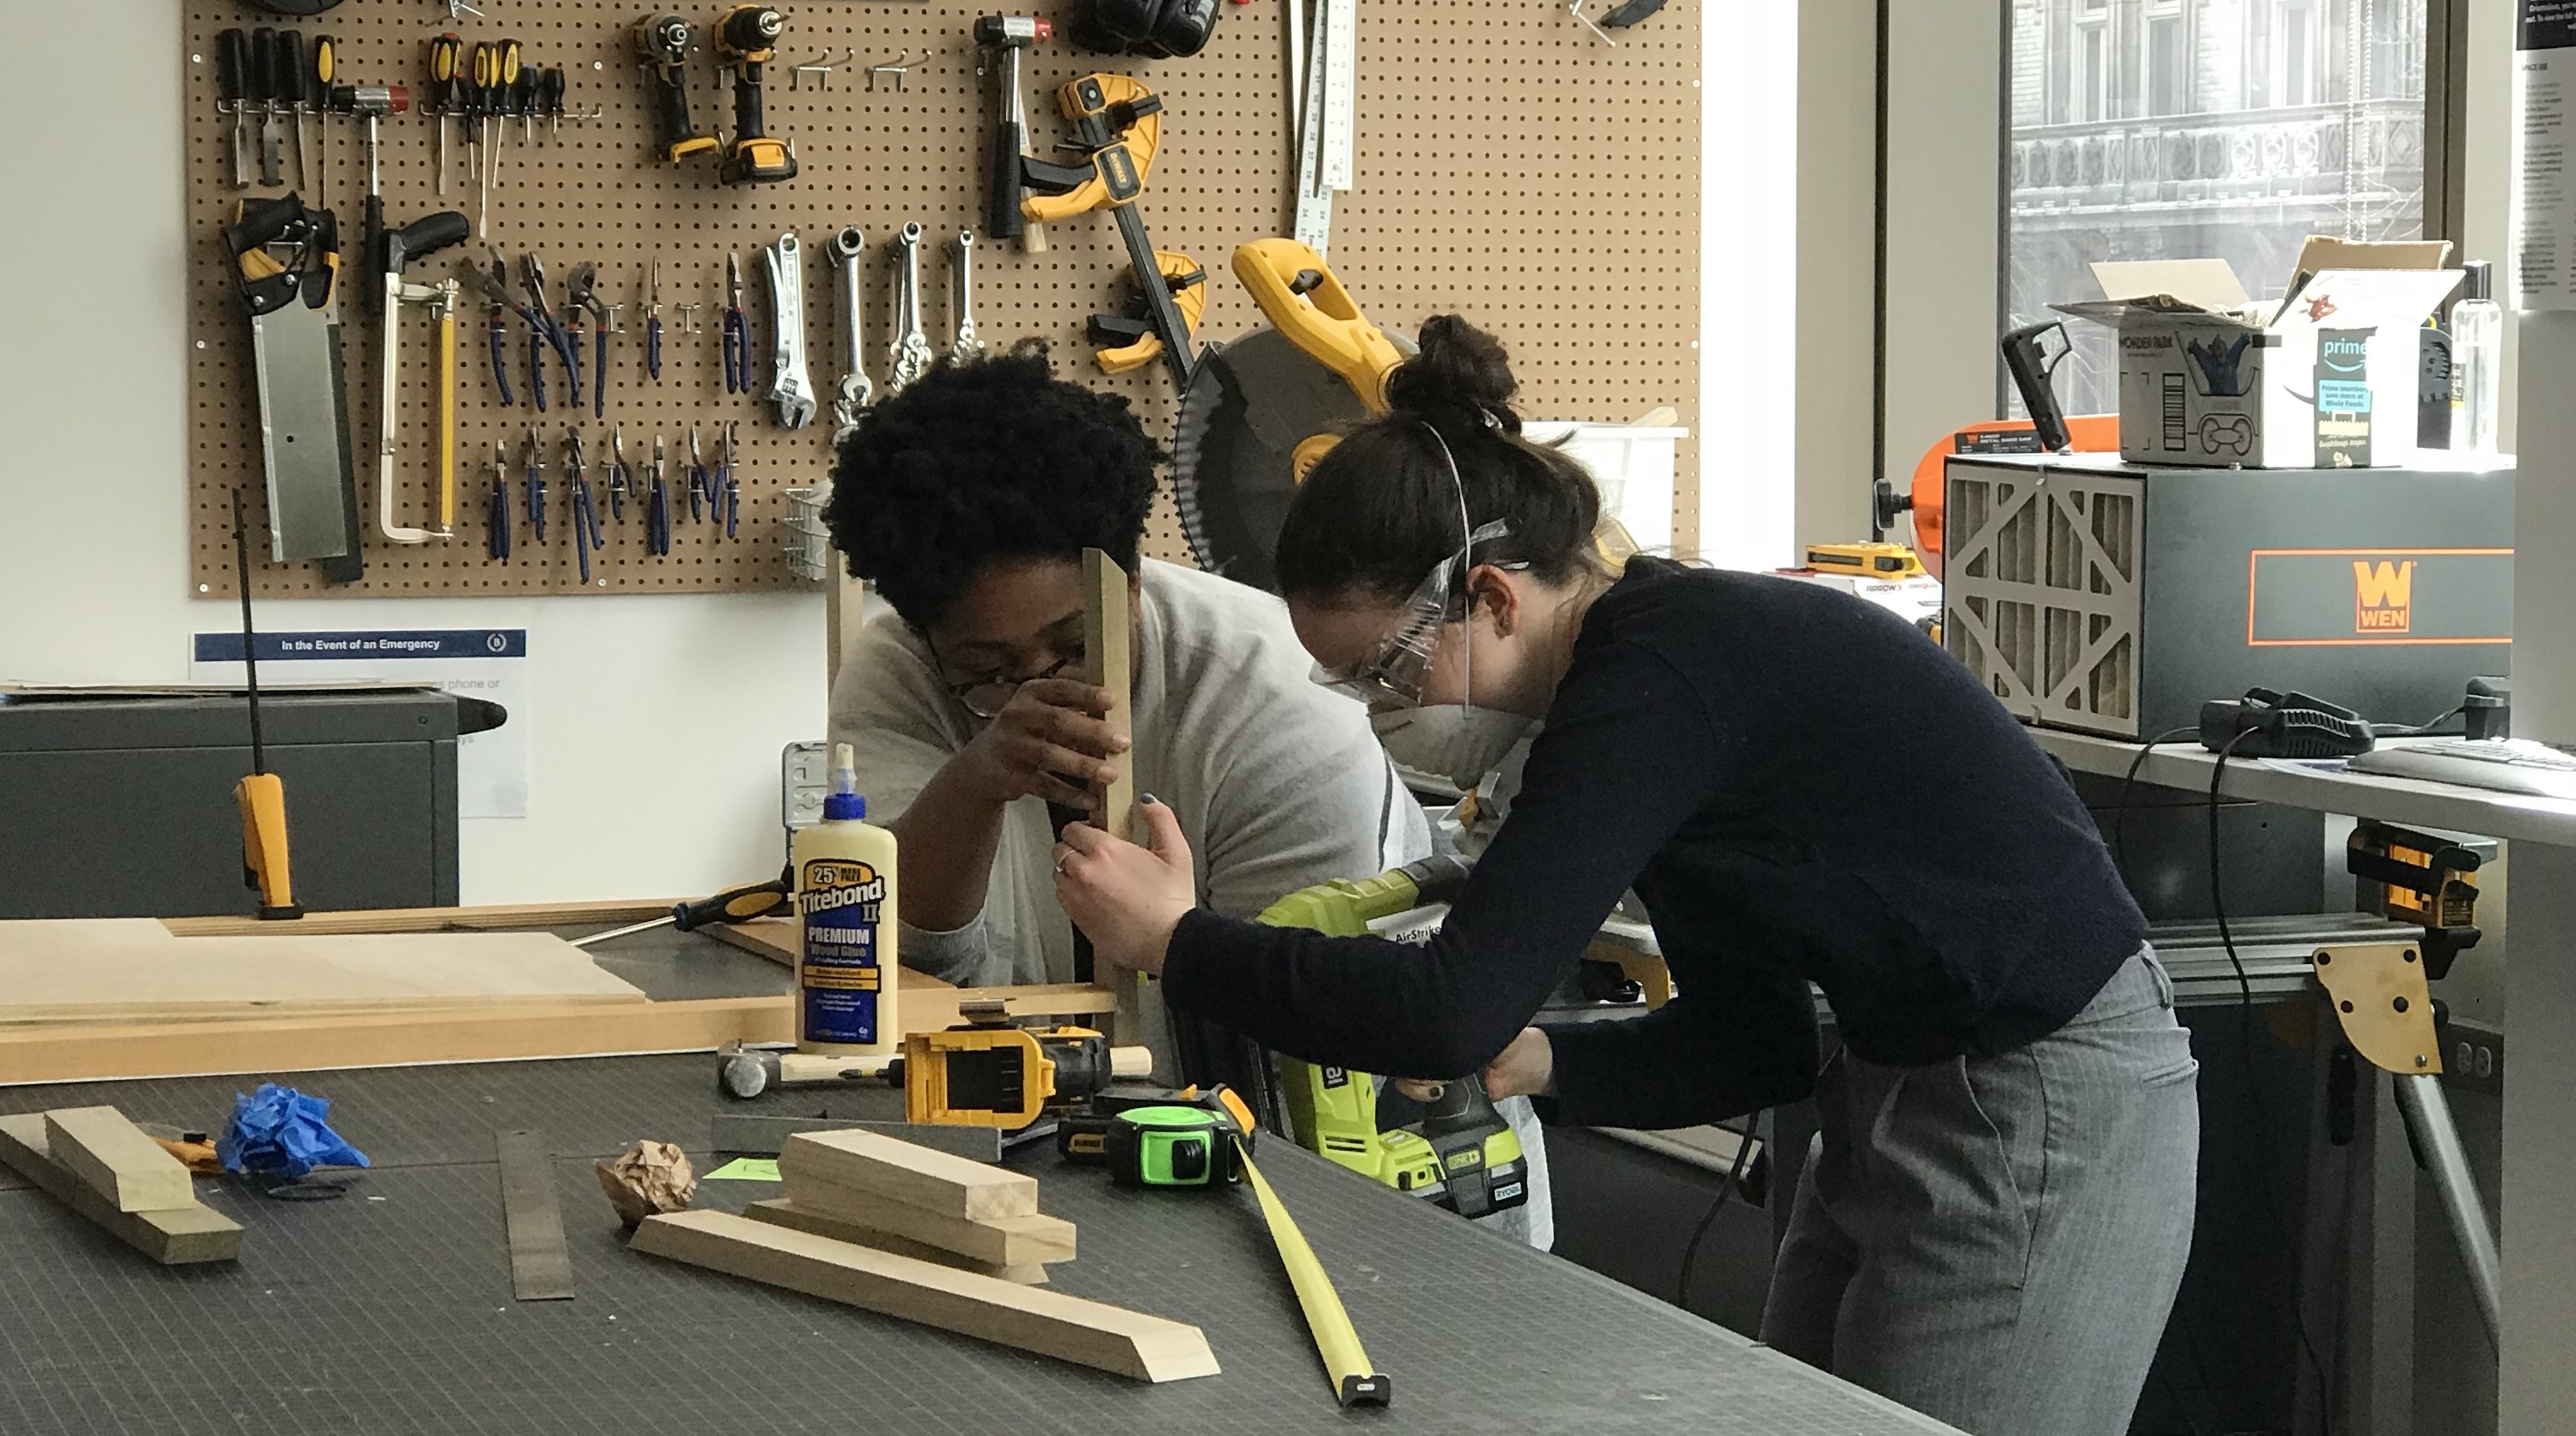 two people wearing safety goggles and using woodworking tools